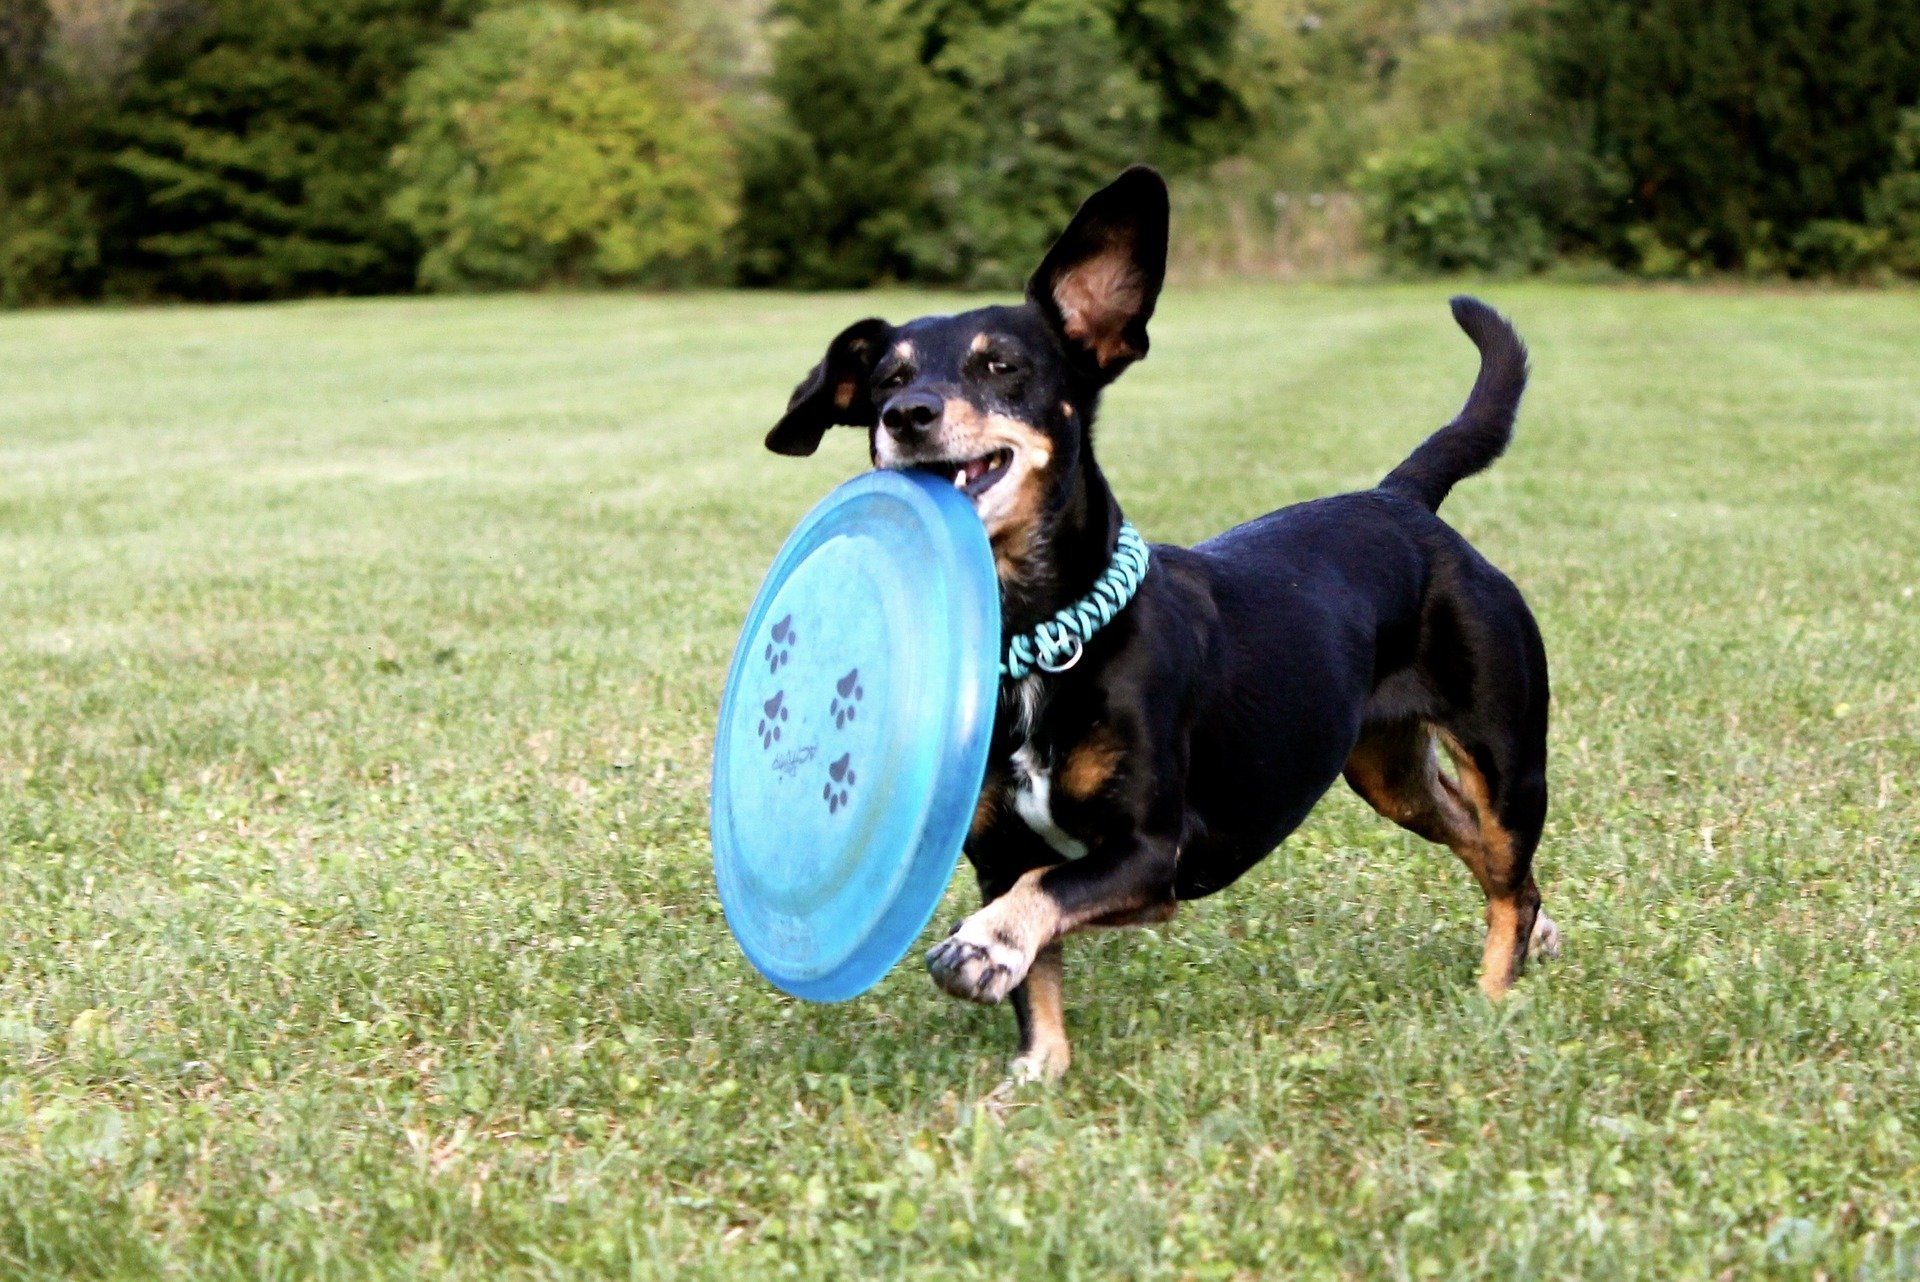 Dog With Frisbee - Keep Dog Active During Social Distancing